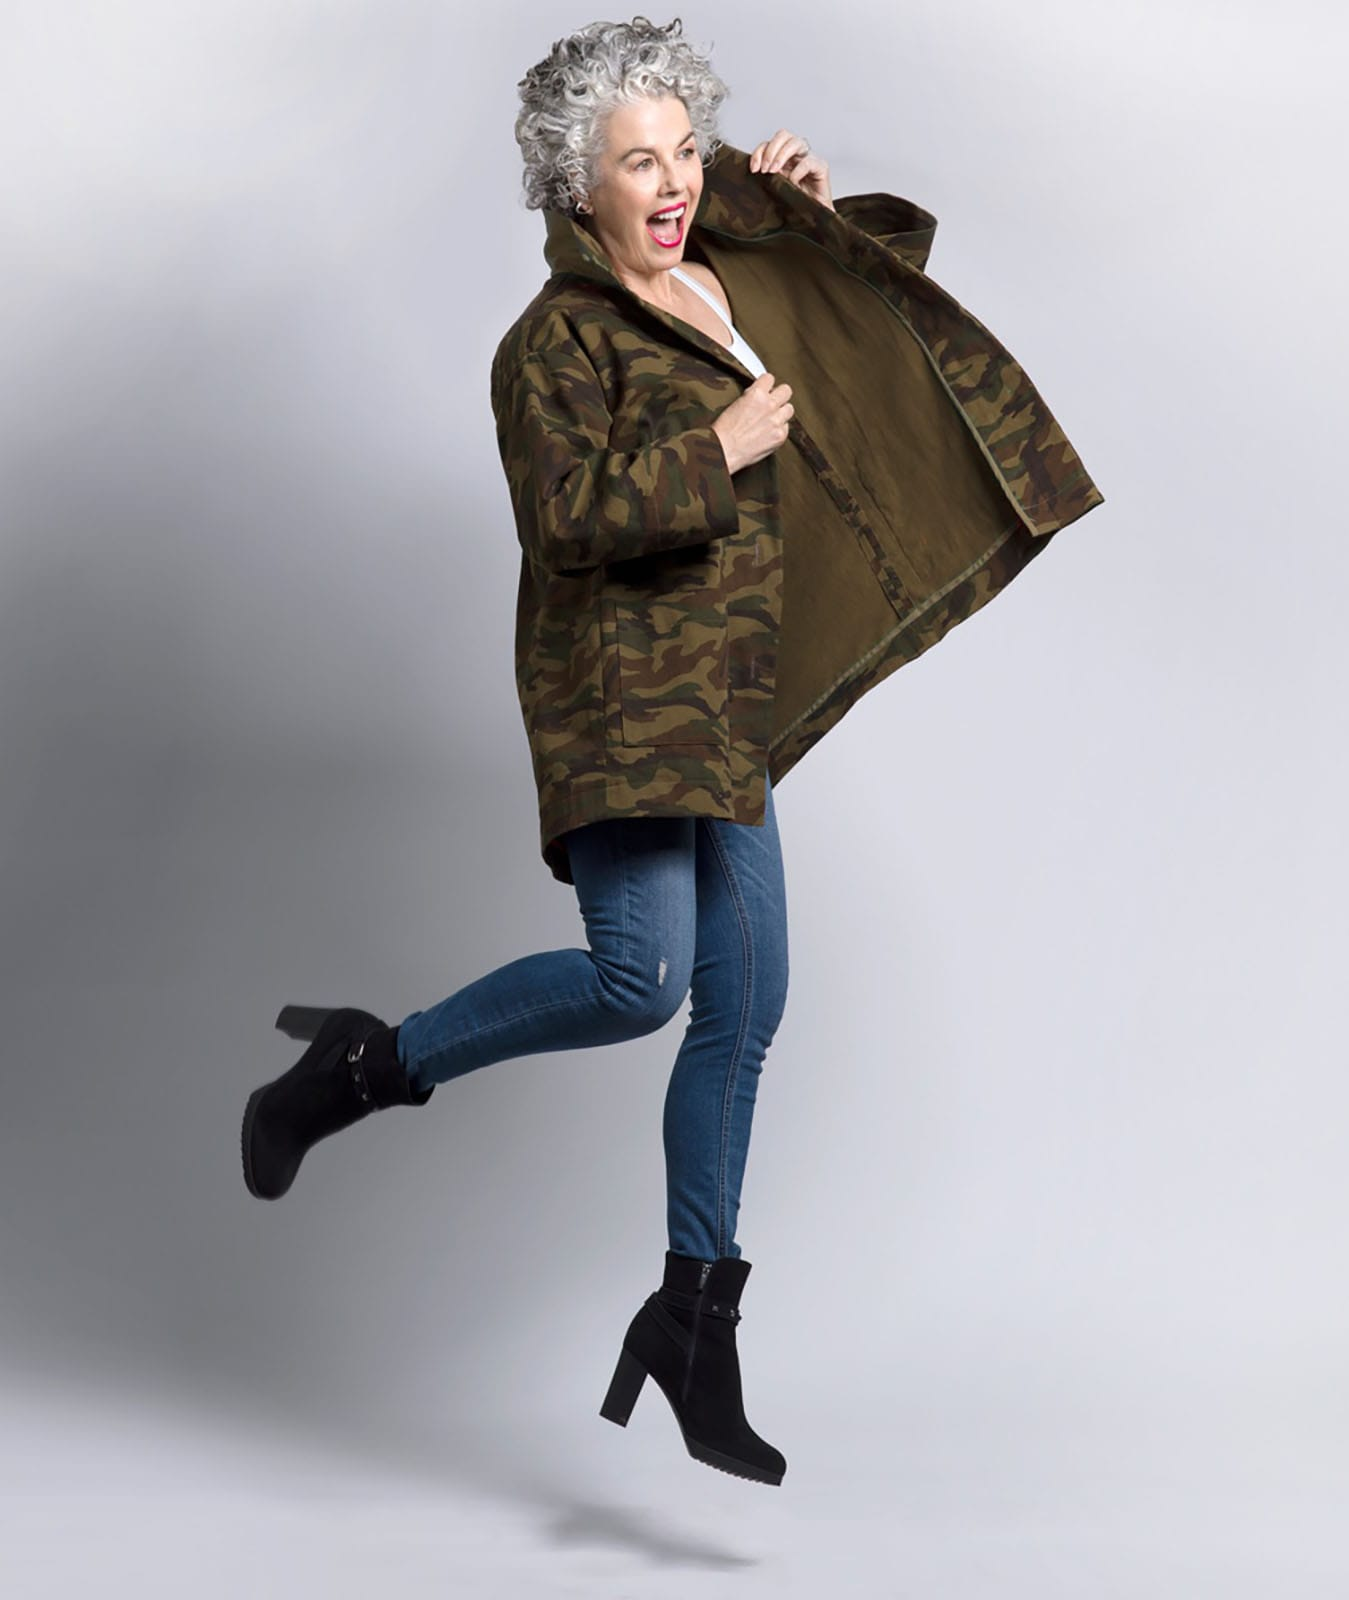 Kerry Lou in Camo Jacket and boots on Ageless Style with Cindy Hattersley